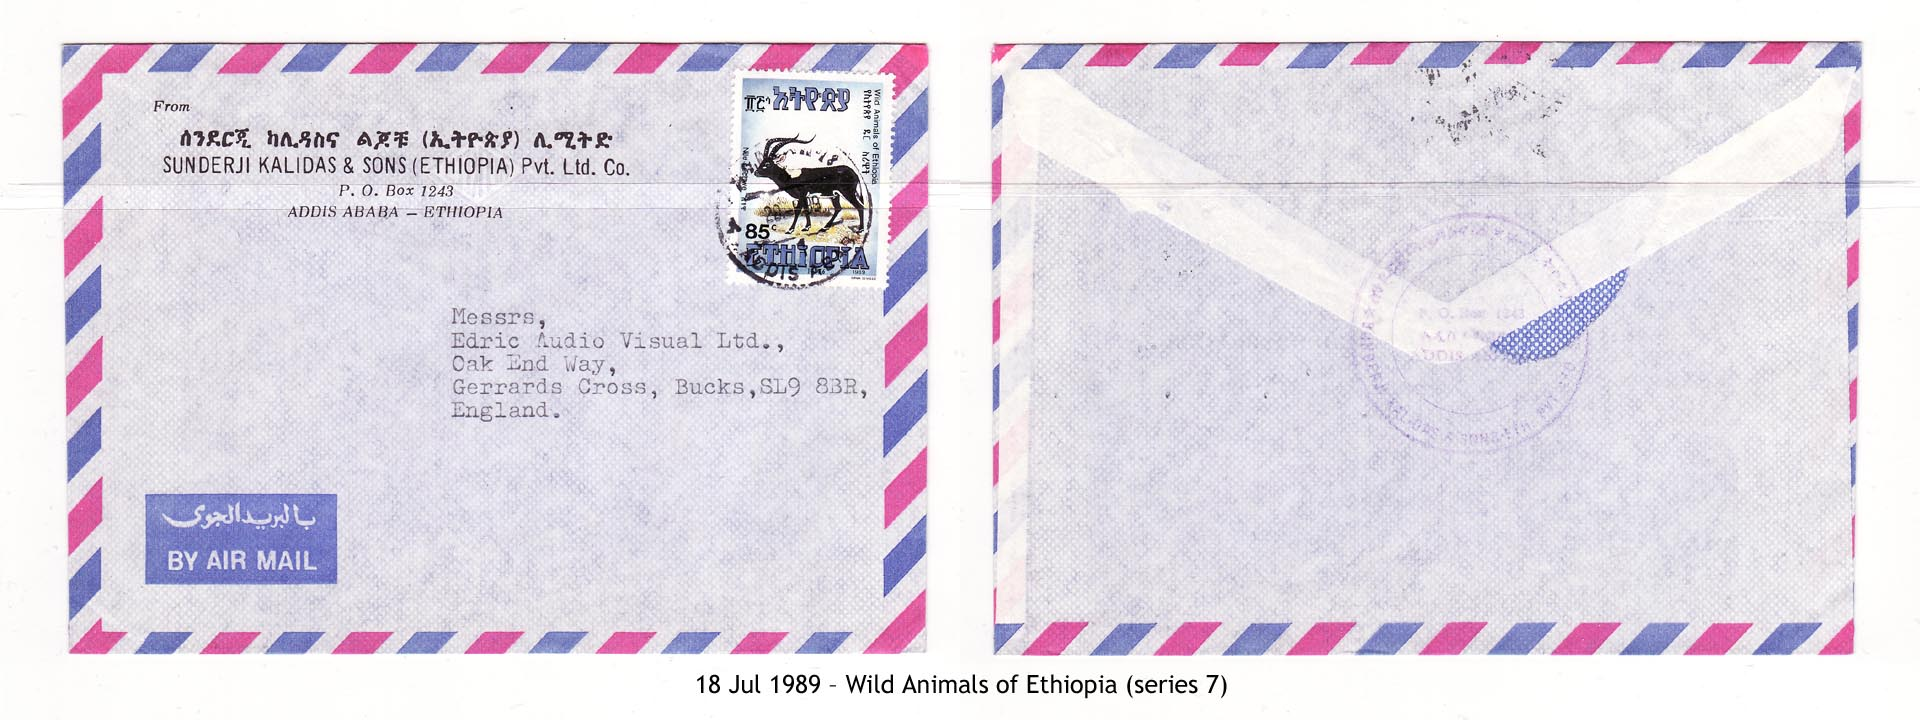 19890718 – Wild Animals of Ethiopia (series 7)